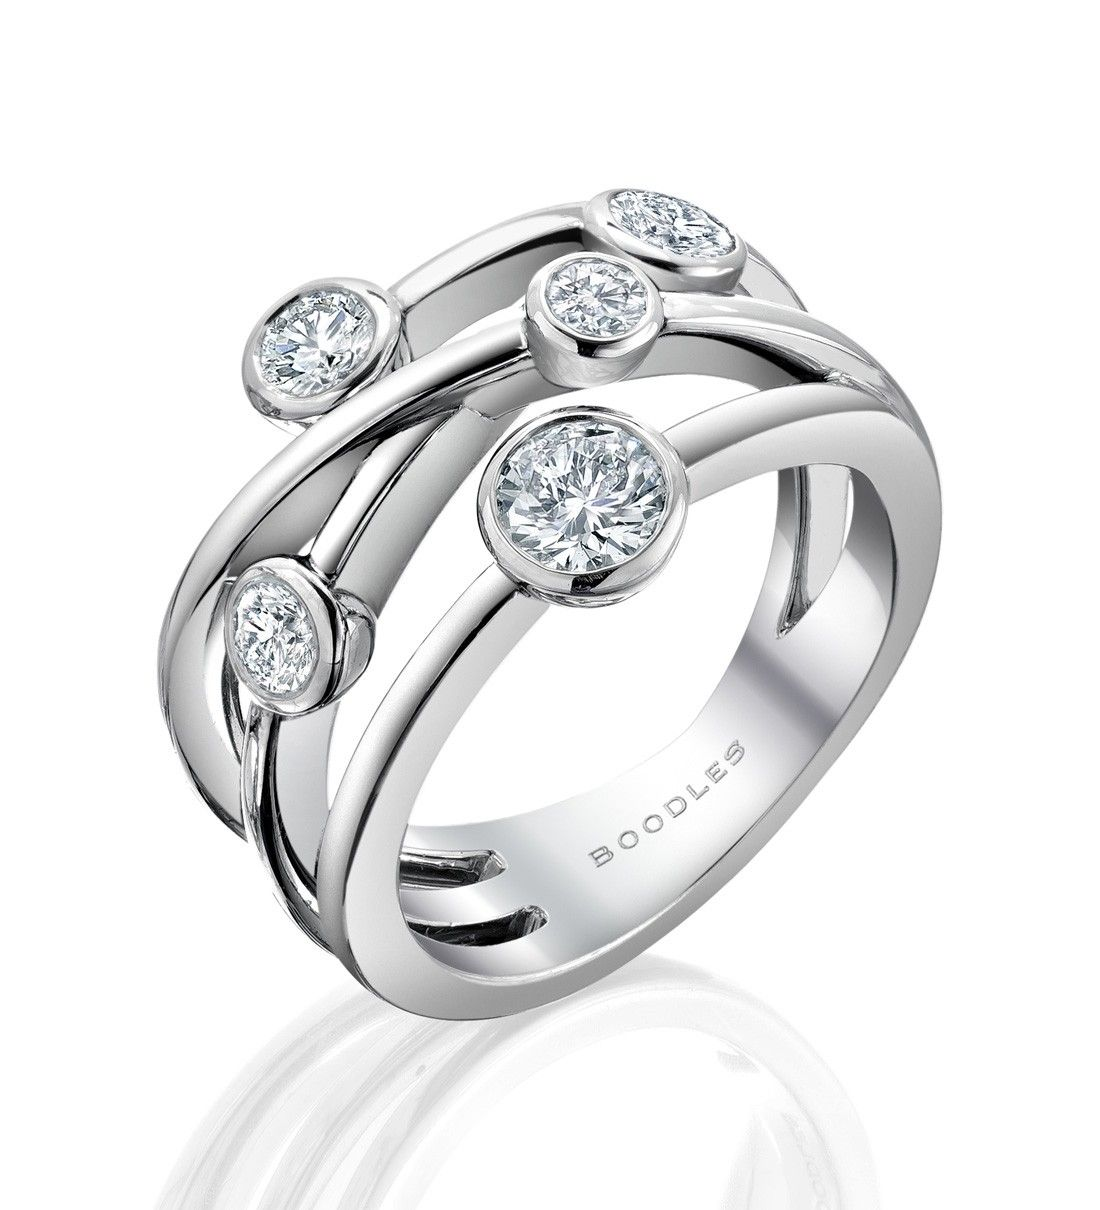 wedding band sets multi band wedding ring 21 best images about wedding band sets on Pinterest Custom wedding rings Modern engagement rings and Custom jewelry